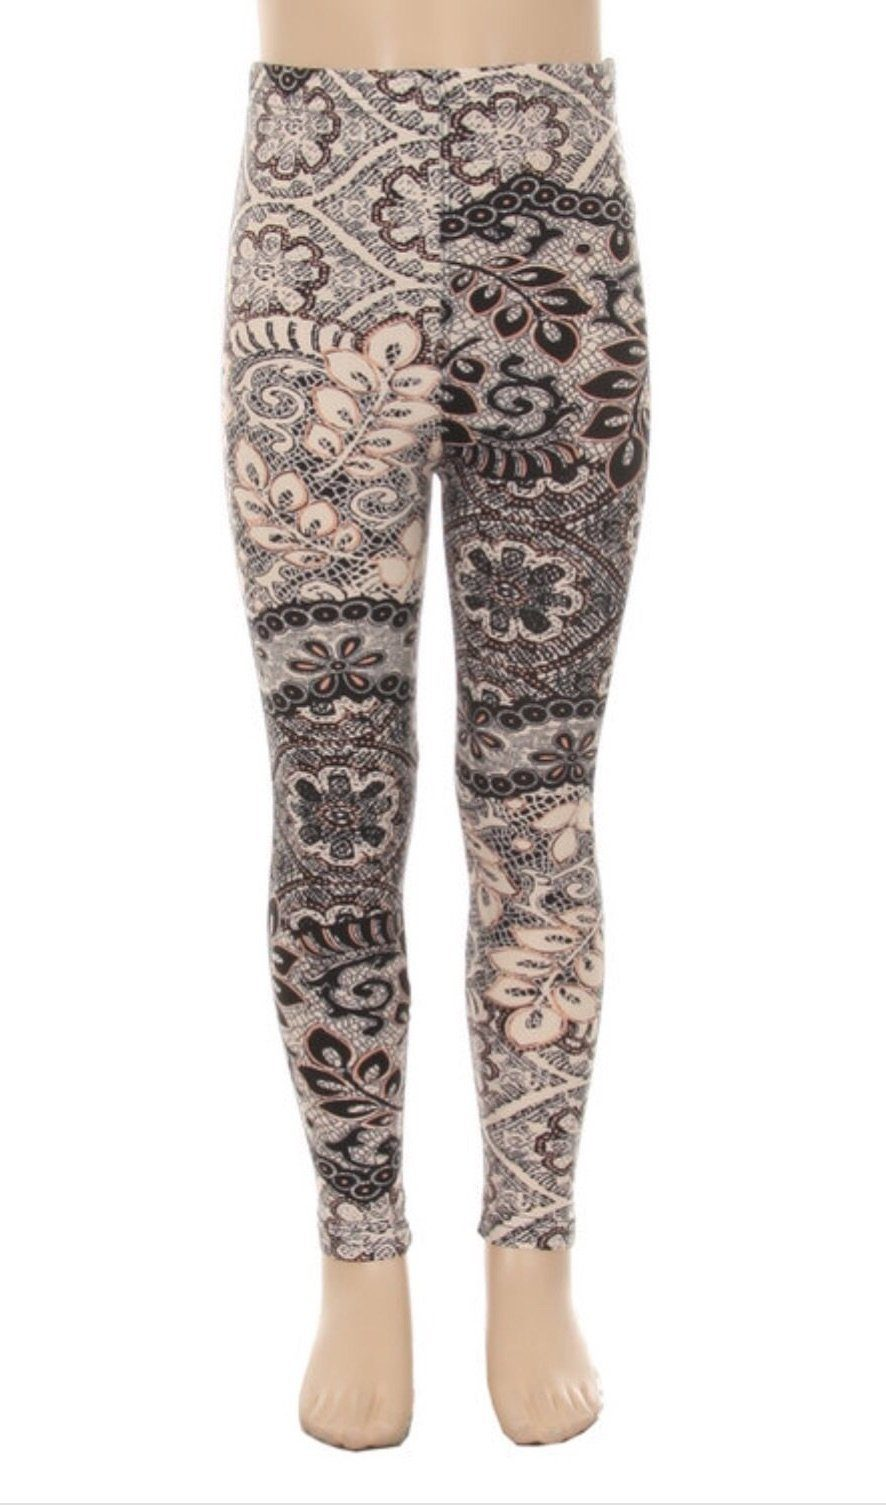 Girl's Lace Vine Printed Leggings Cream: S and L - MomMe and More Matching Mommy and Me Clothing